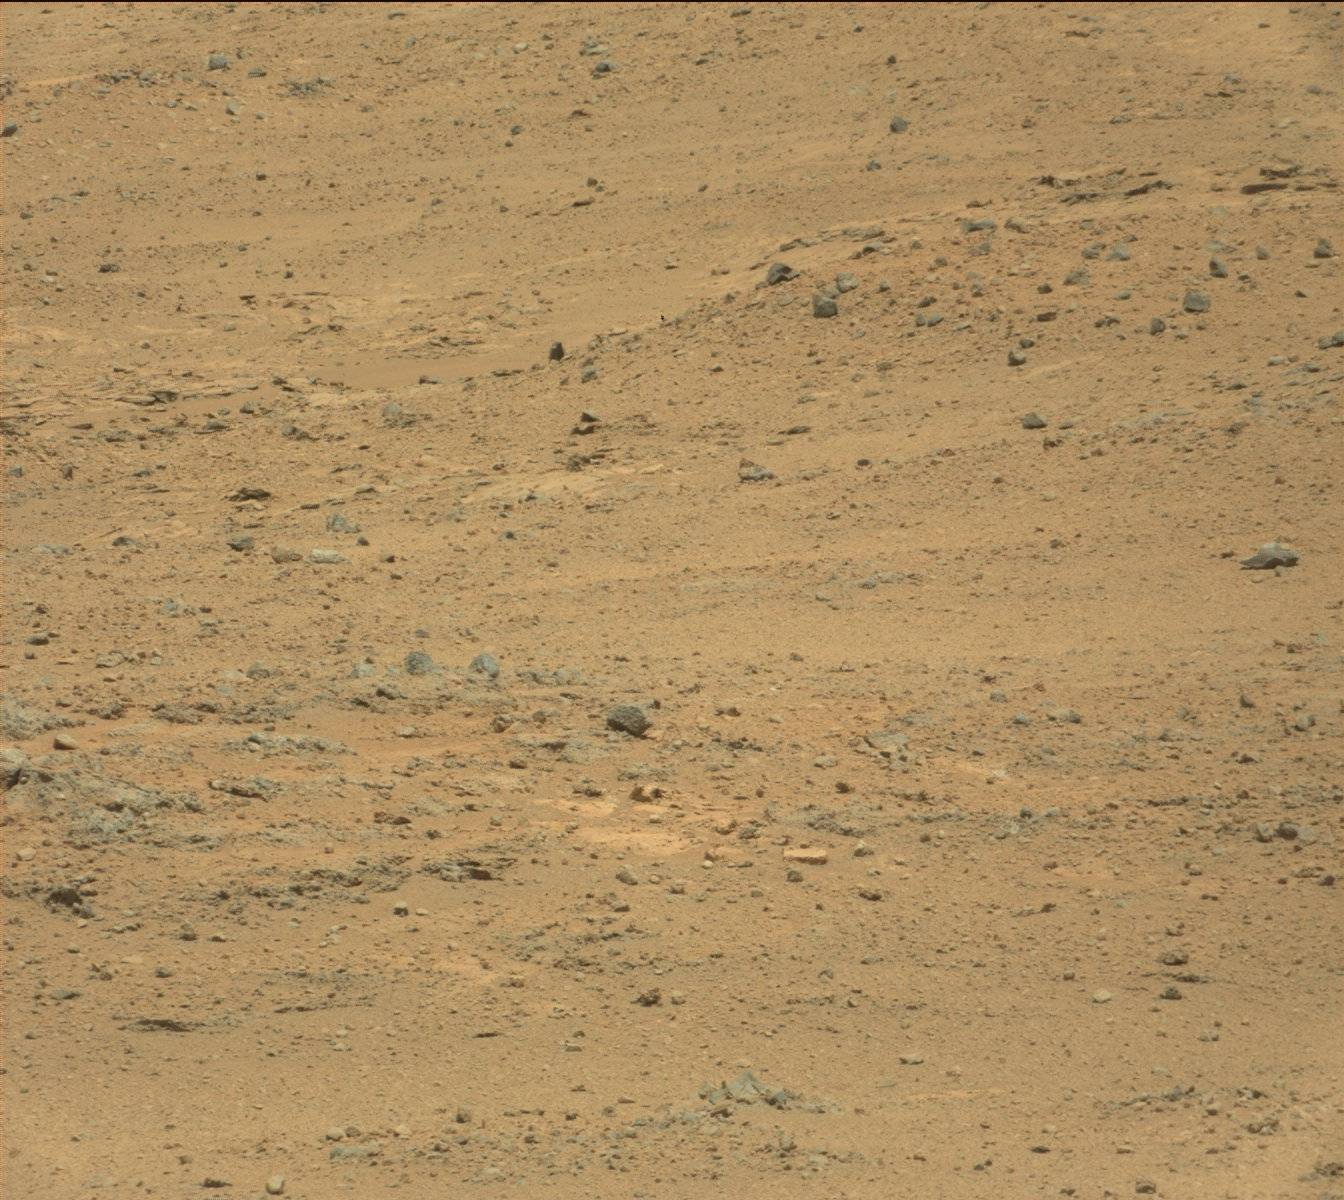 Nasa's Mars rover Curiosity acquired this image using its Mast Camera (Mastcam) on Sol 389